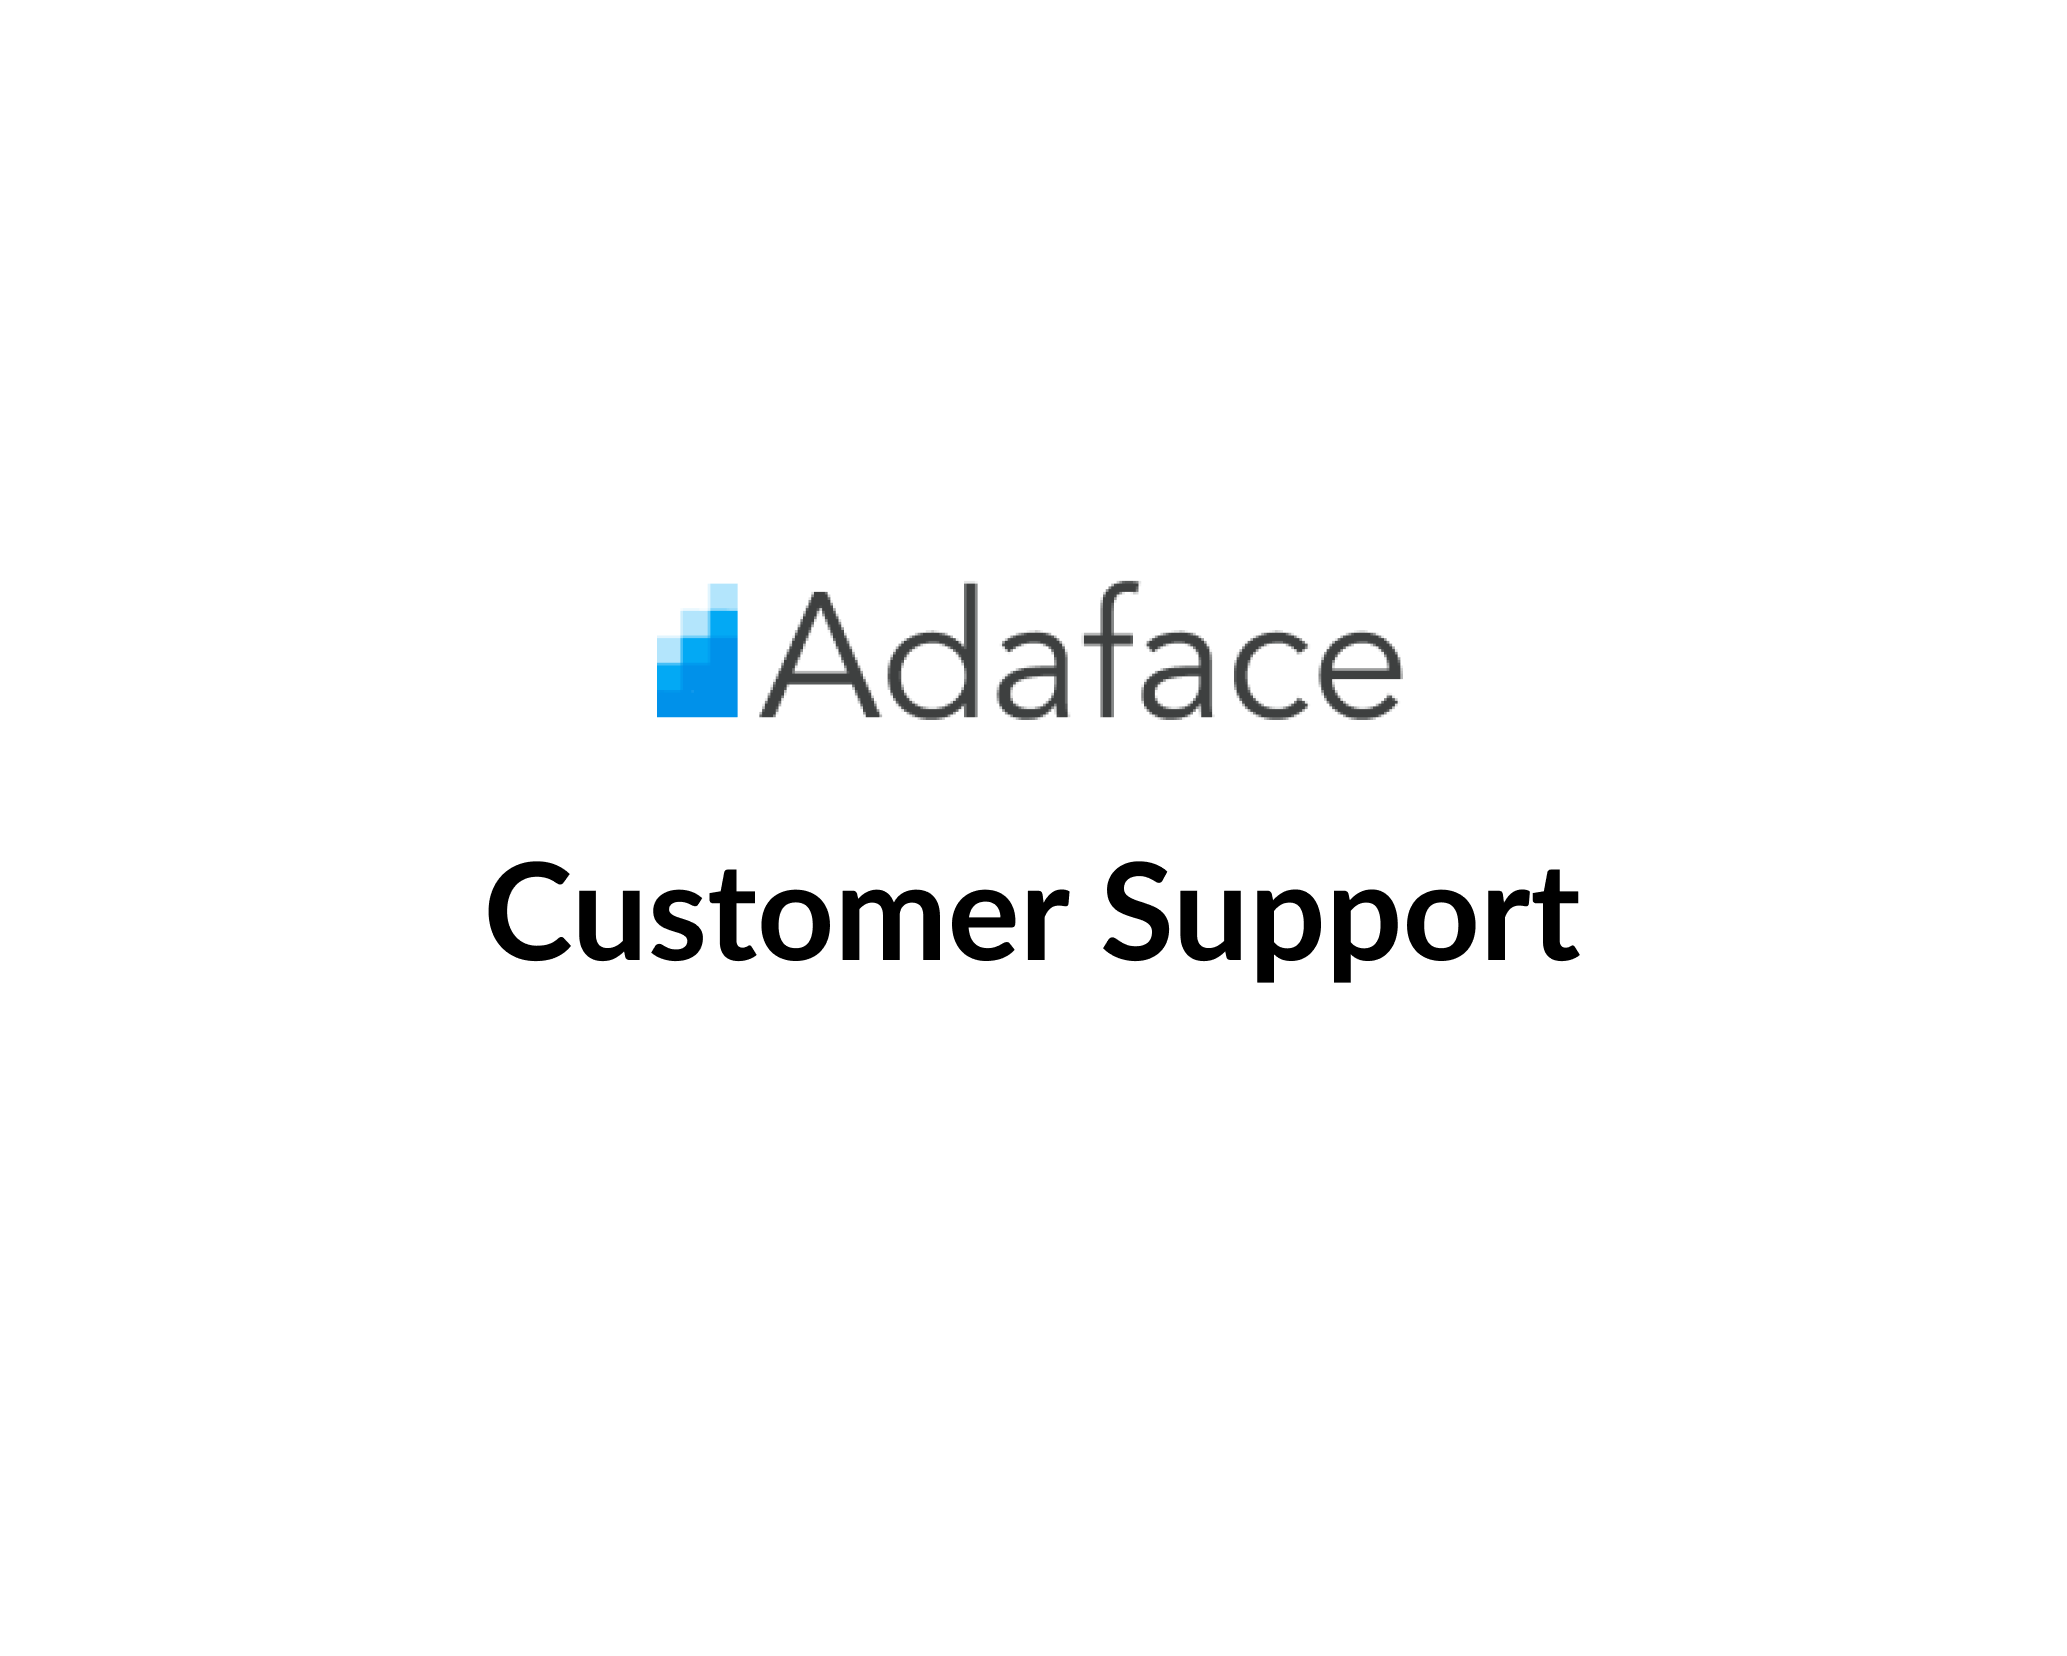 Customer Support at Adaface image